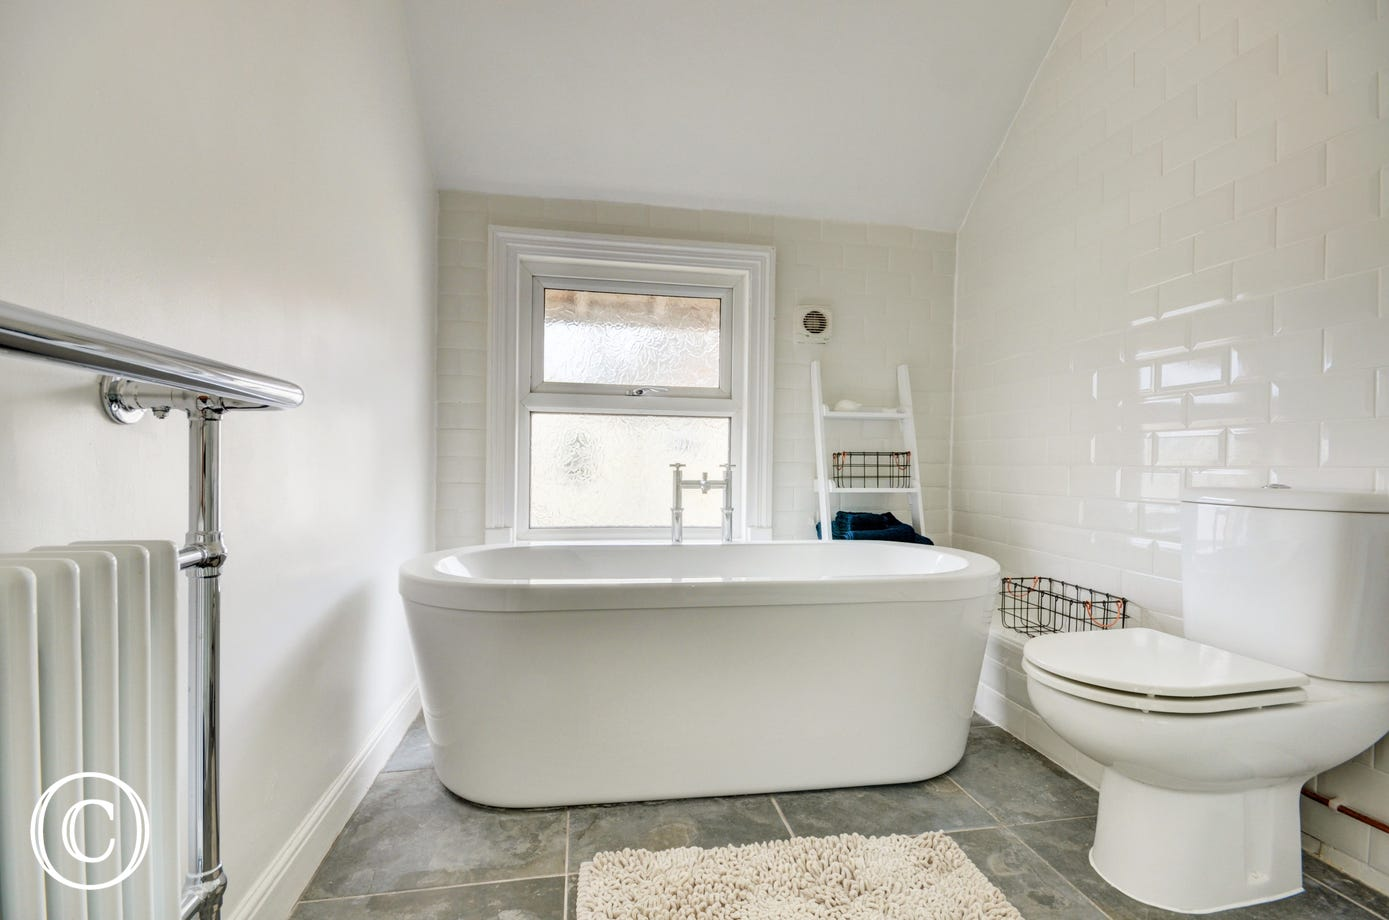 Bathroom with bath, separate shower cubicle, washbasin and w.c